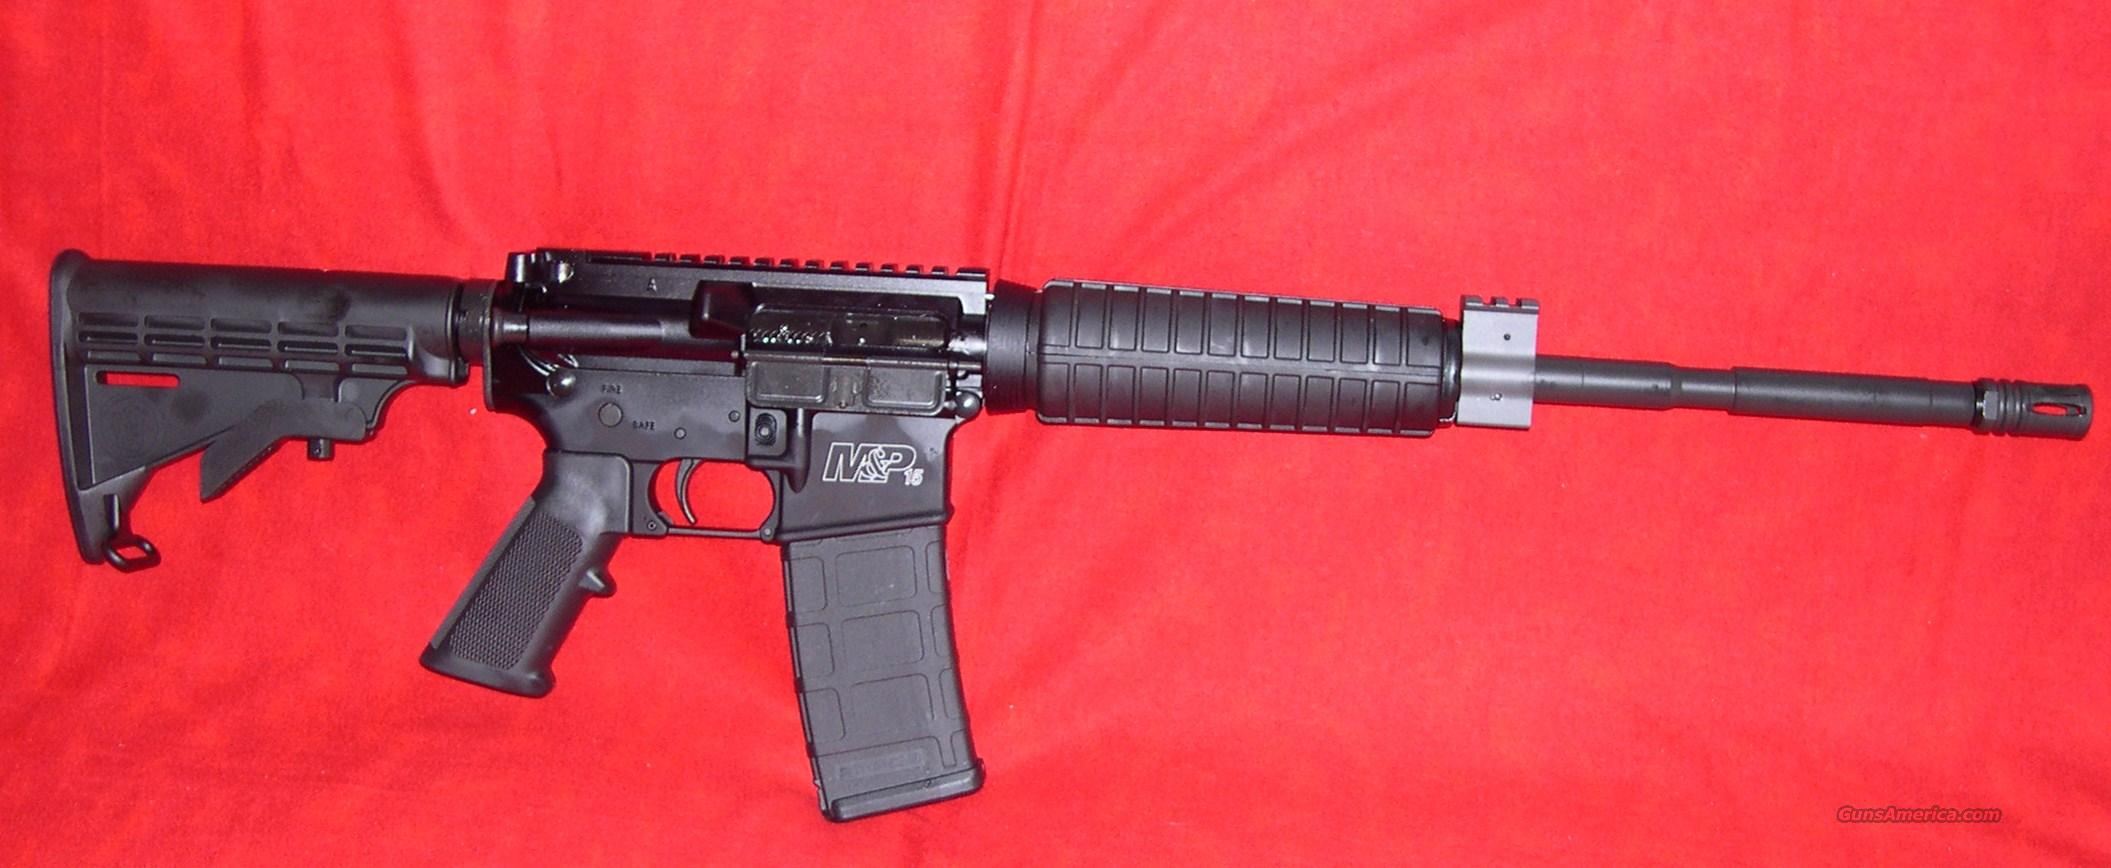 S&W M&P15 OR Buy it Now Free Shipping  Guns > Rifles > Smith & Wesson Rifles > M&P